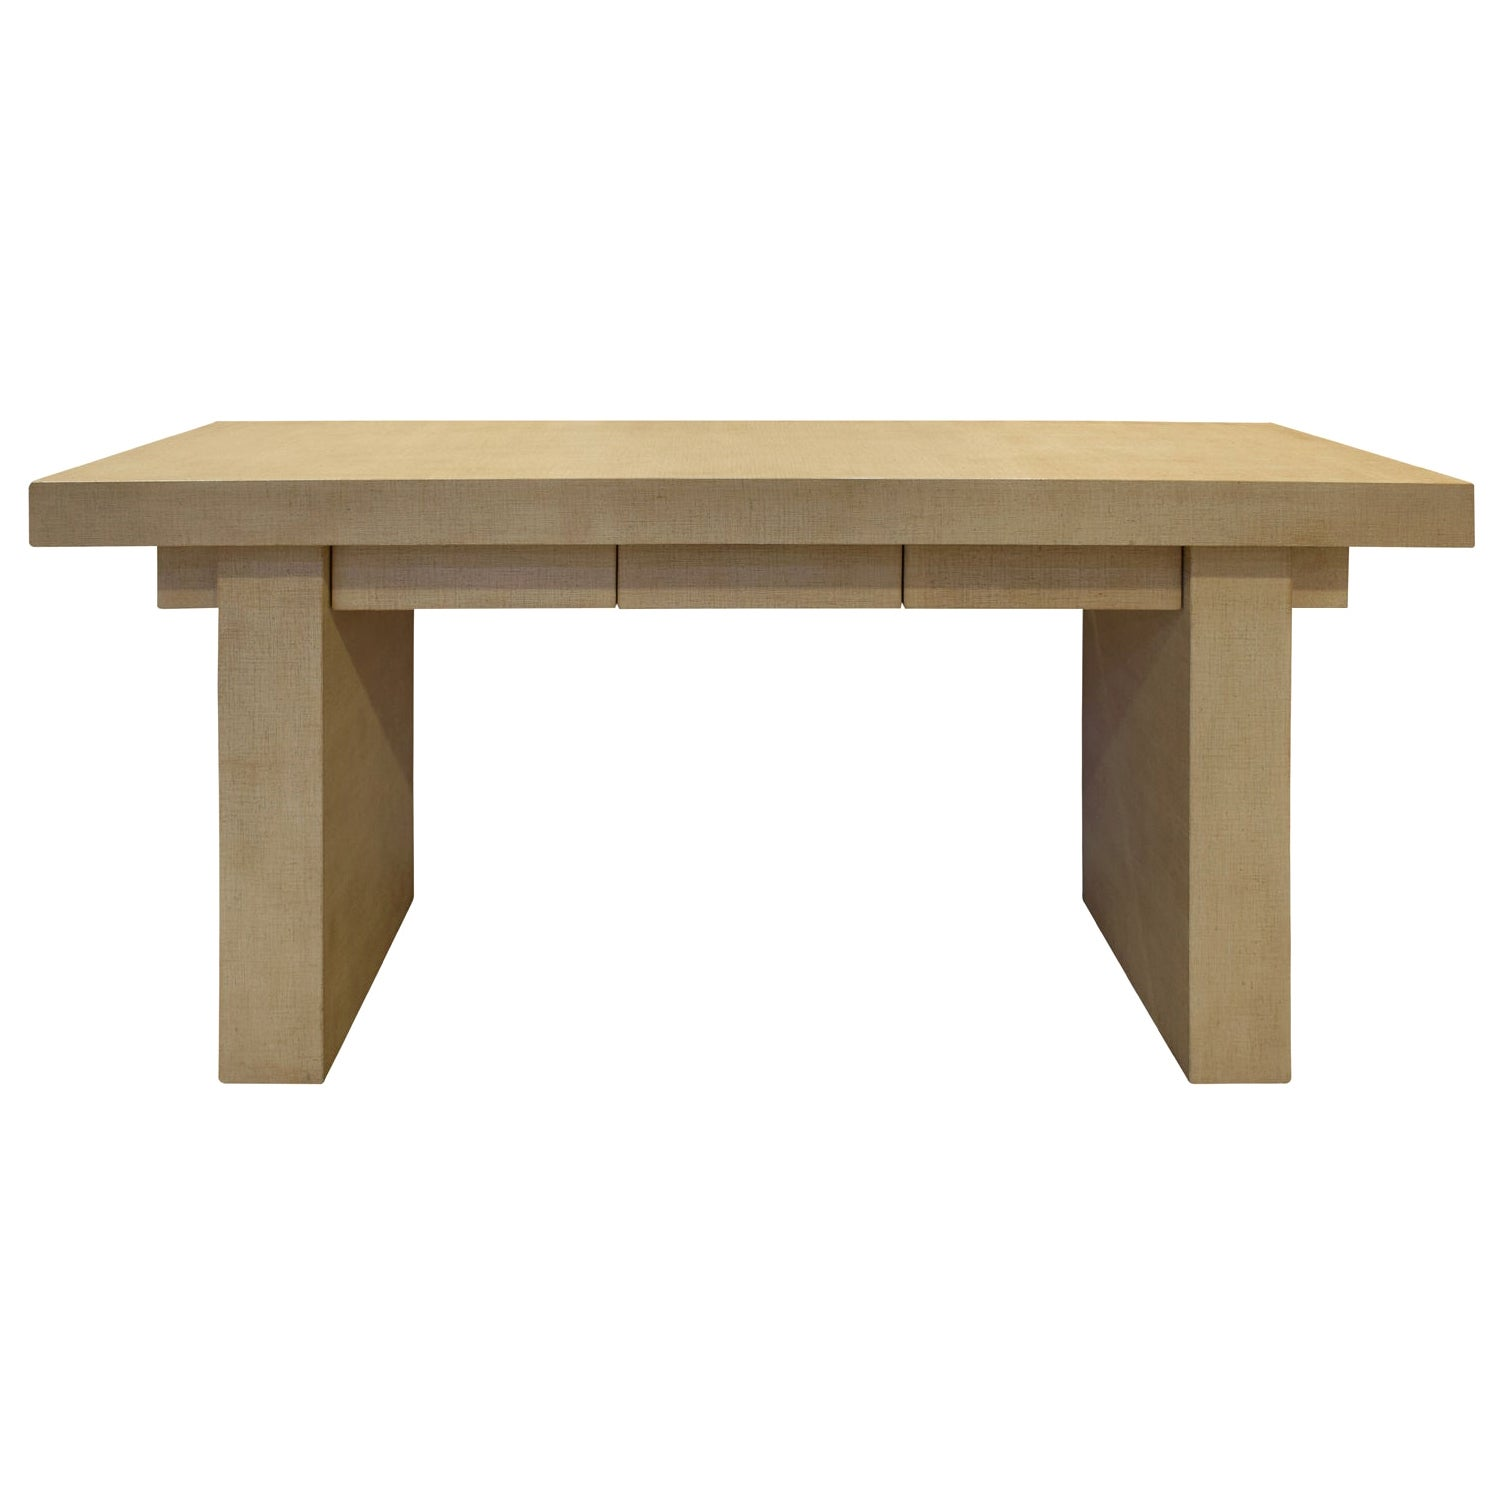 "Karl Springer ""T-Style Console Table"" in Lacquered Linen, 1970s"